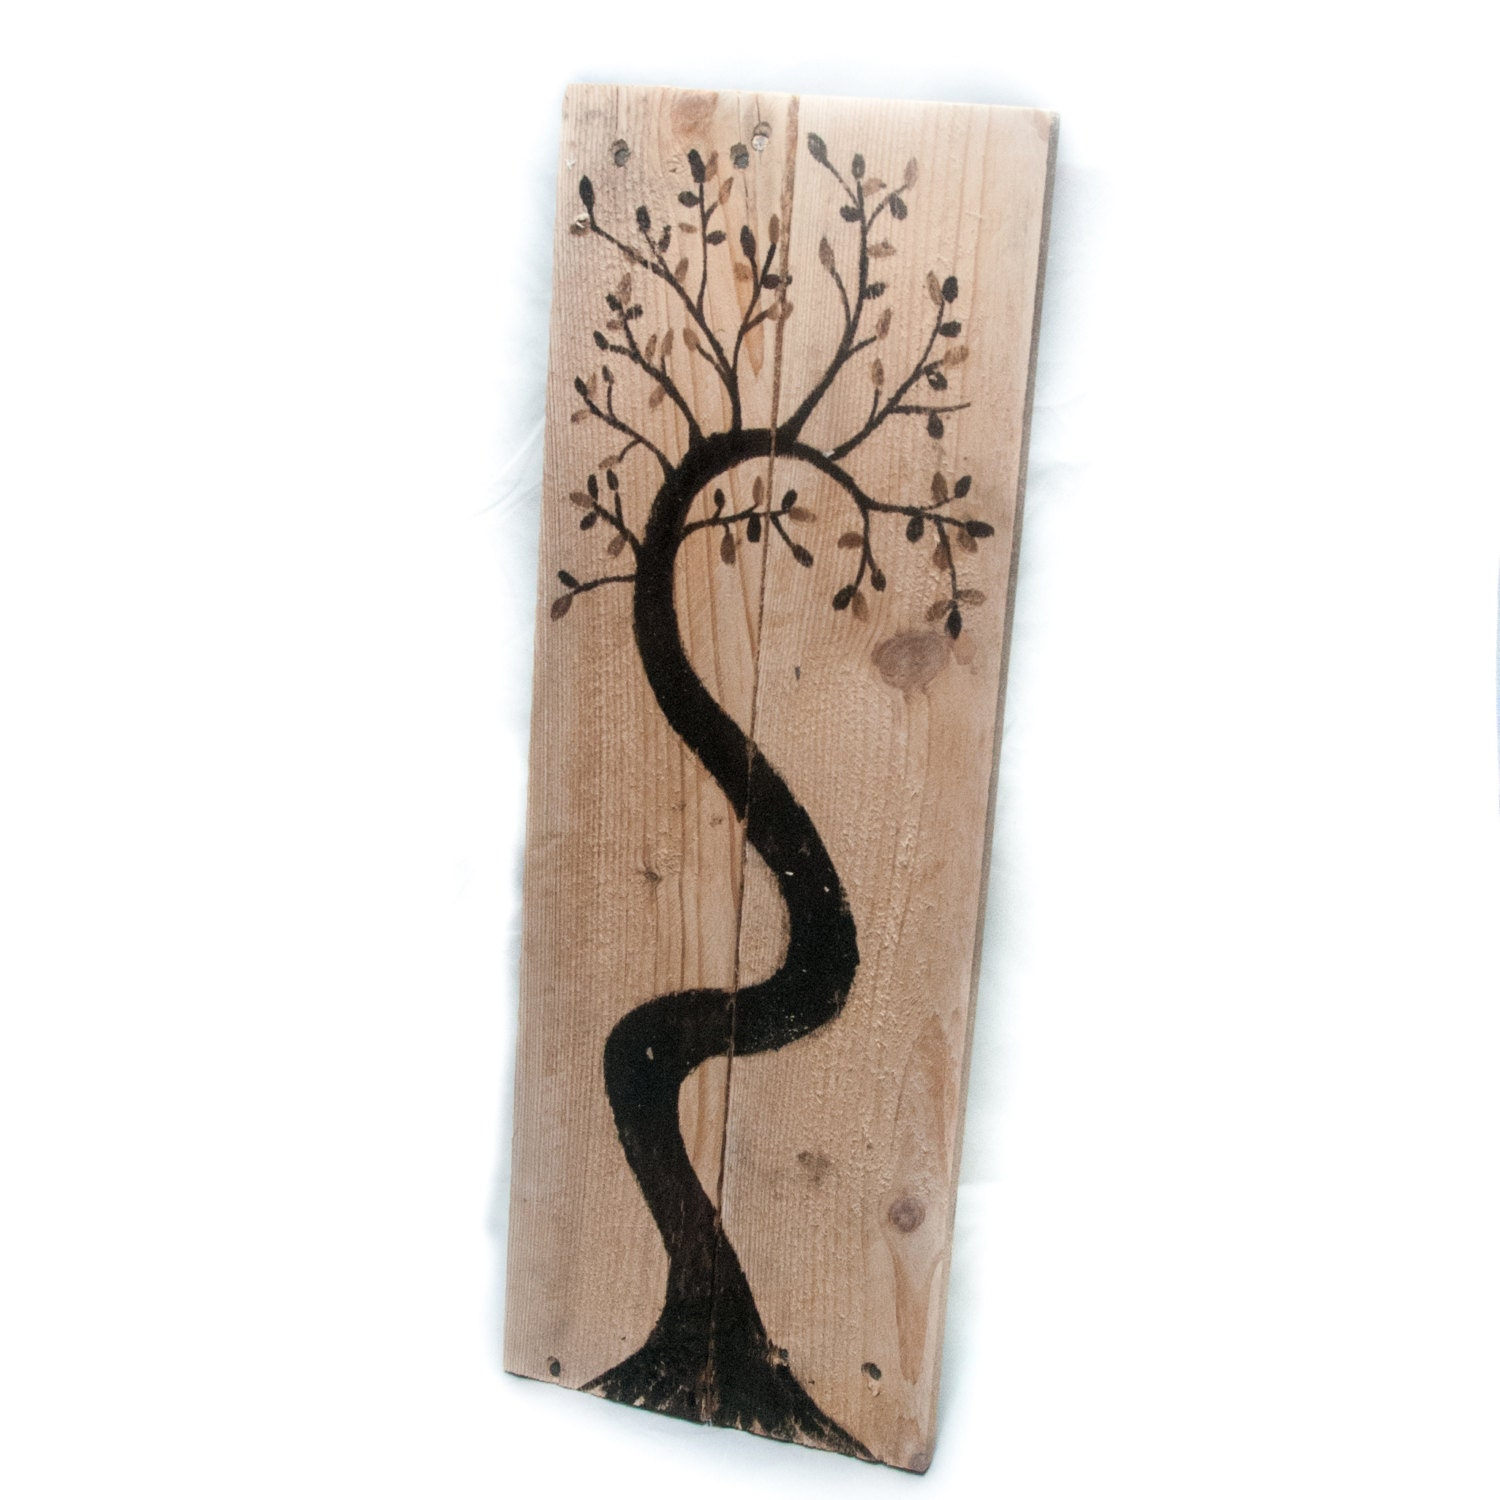 Tree of Life Decor Reclaimed wood art Wood wall decor Tree of